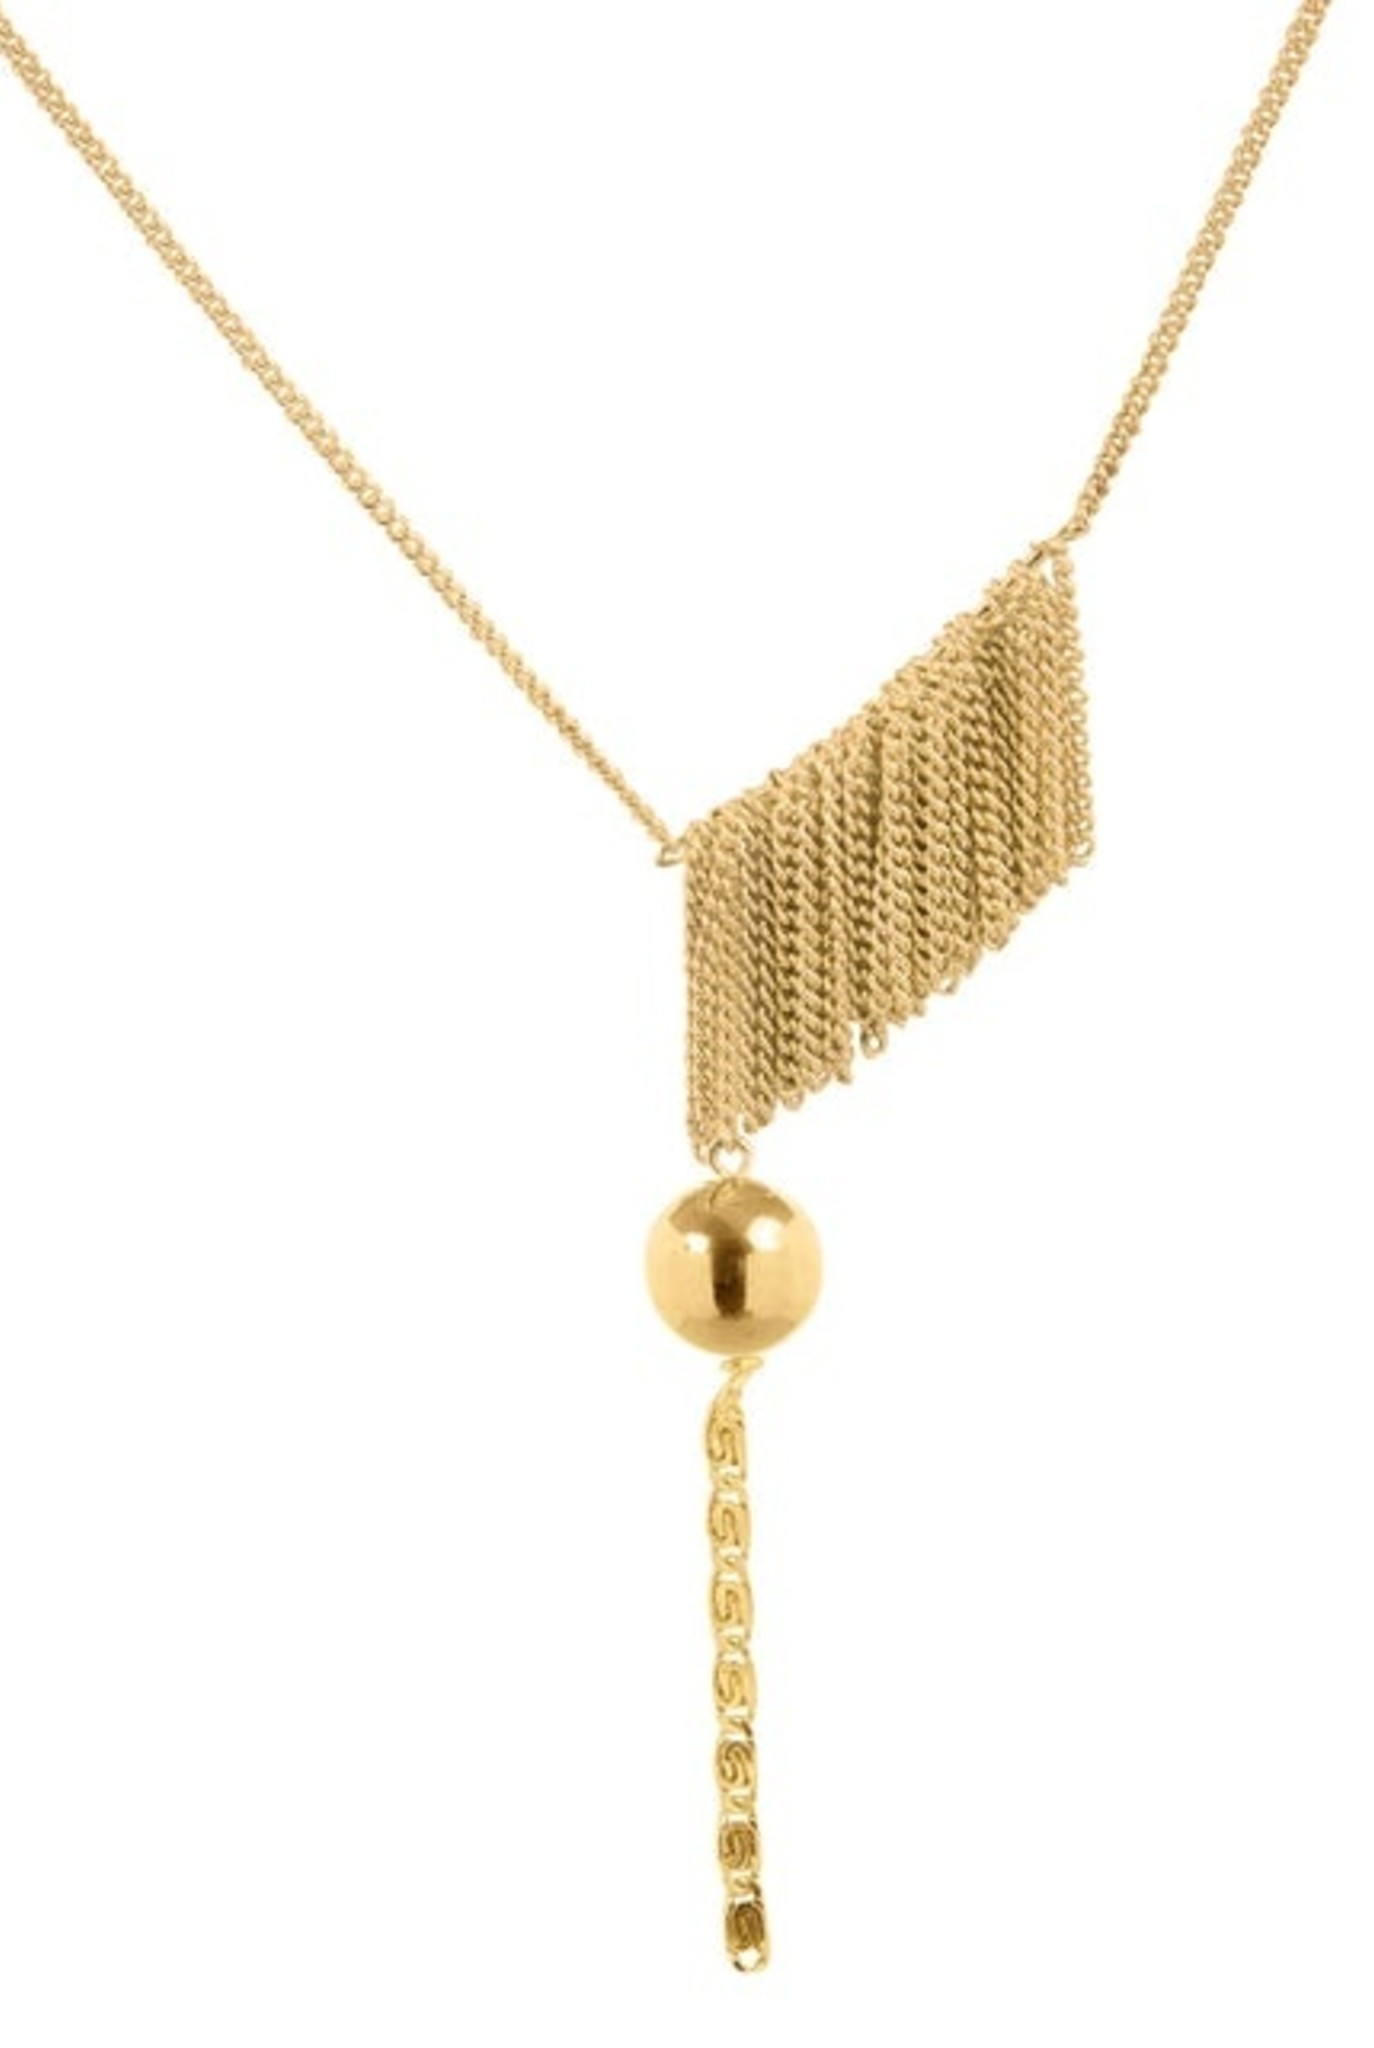 Chains curtain and ball necklace gold plated